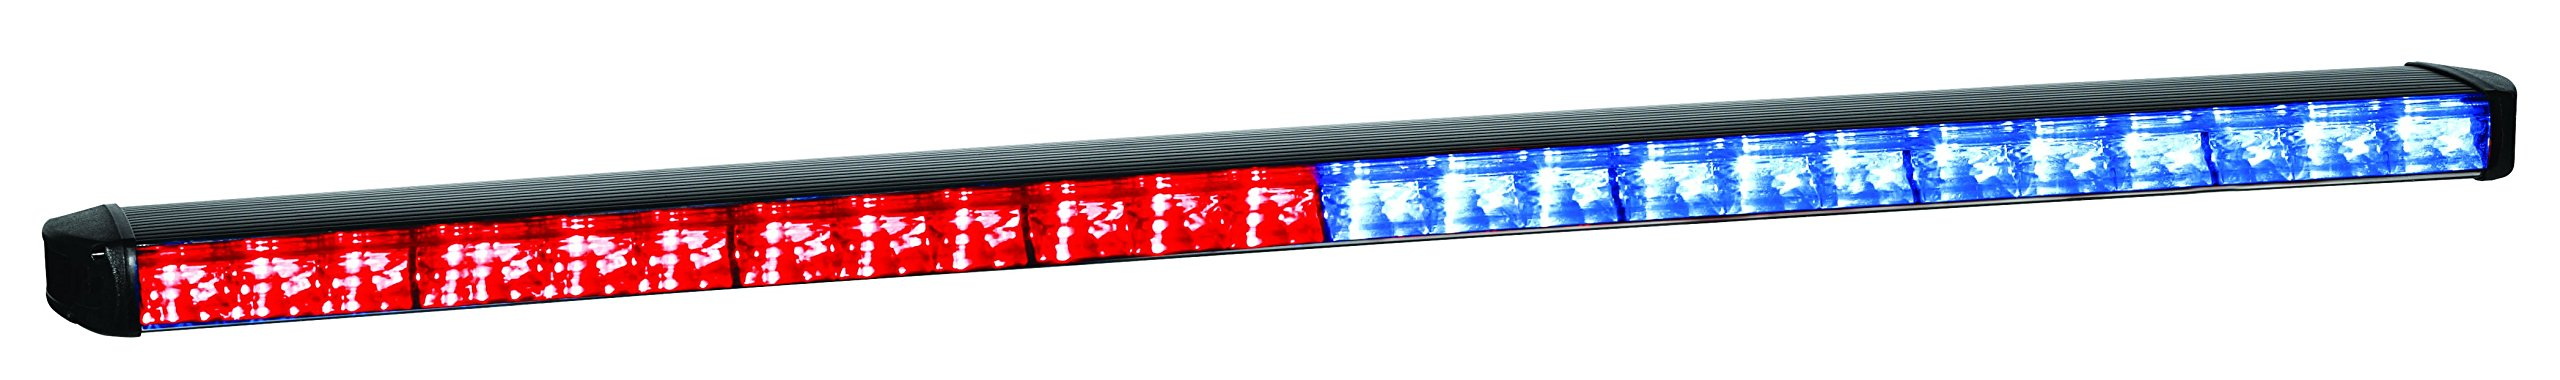 Federal Signal SL8F-RB Latitude Warning Light, Black Housing Red and Blue LEDs, 8 LED Heads